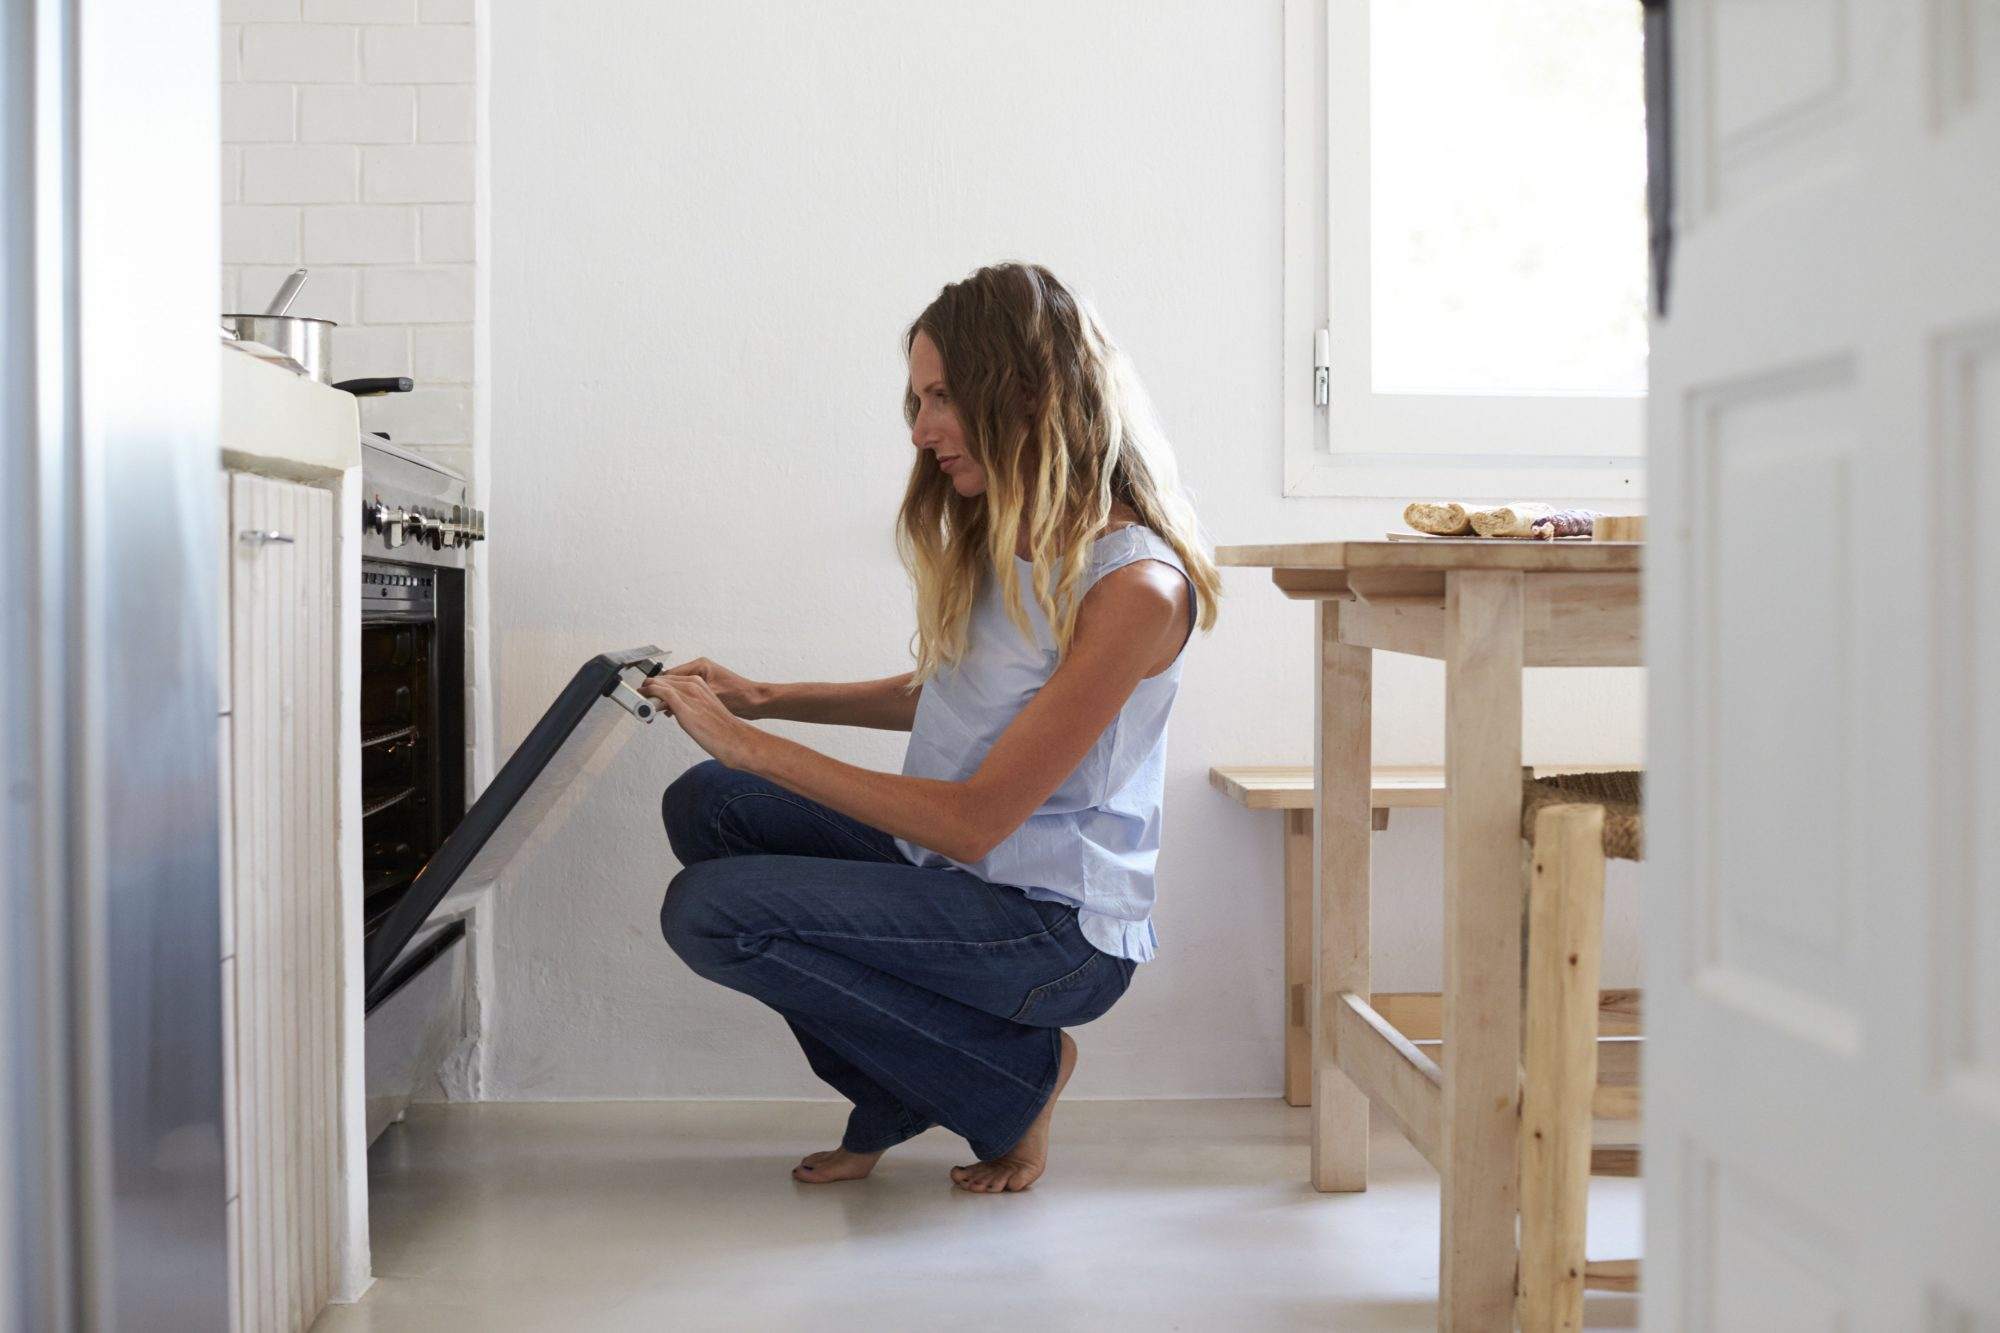 Americans Using Ovens for Storage